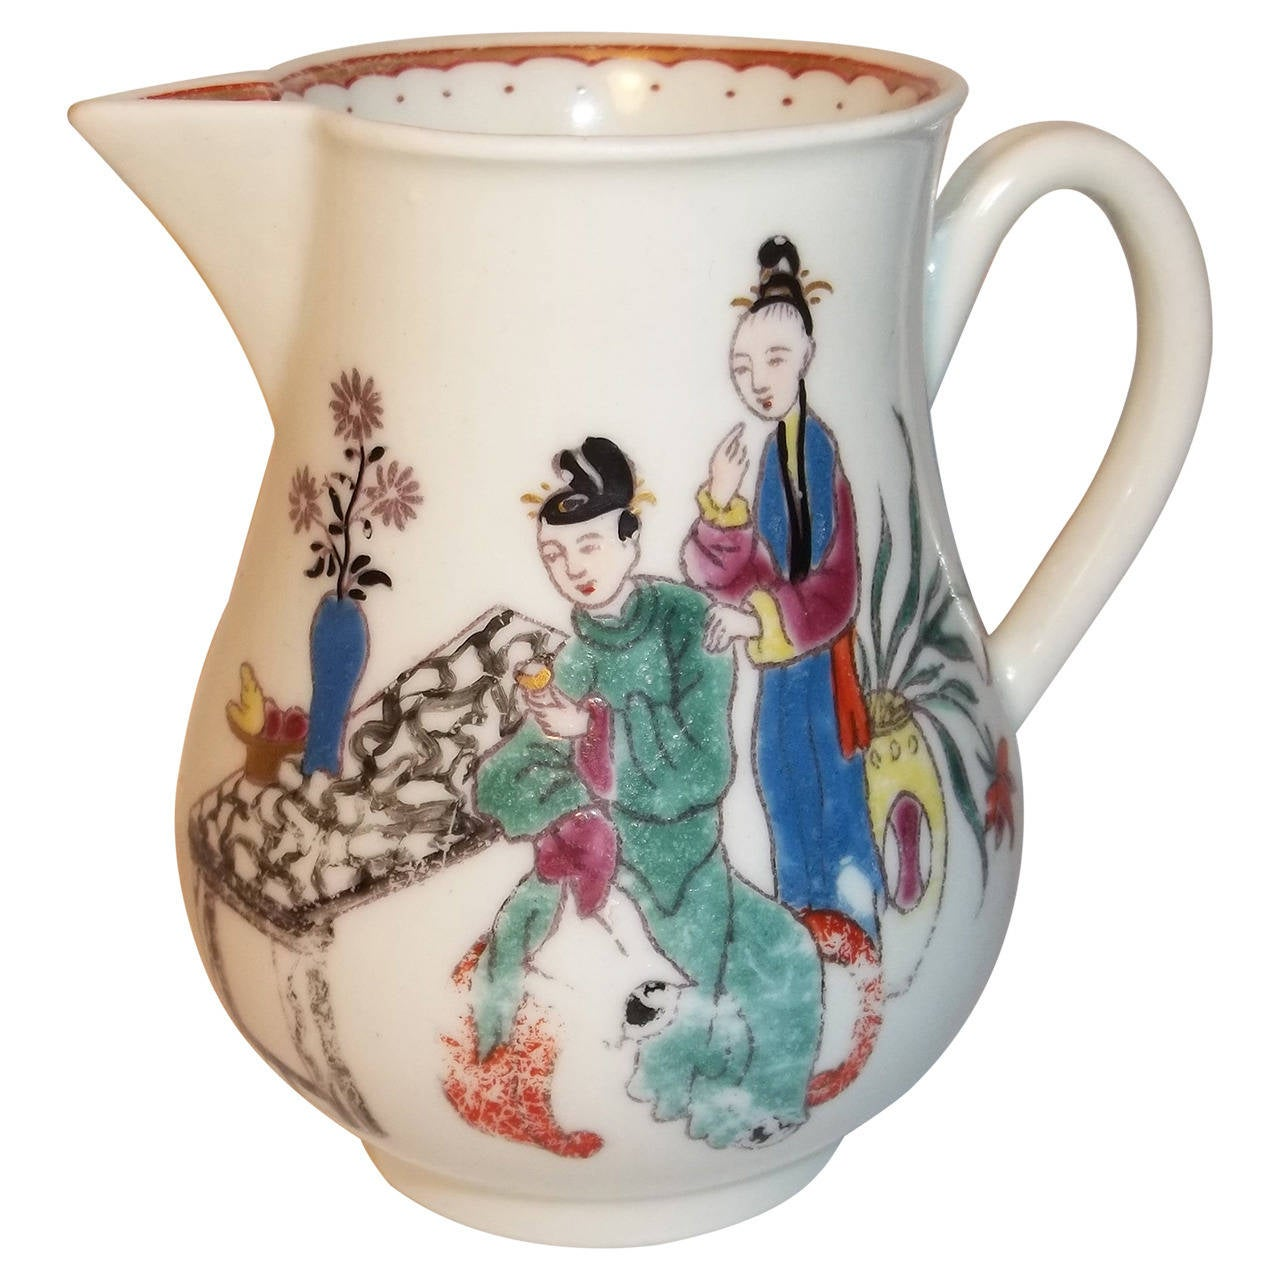 First Period Worcester Porcelain Milk Jug Chinese Family Pattern, circa 1770